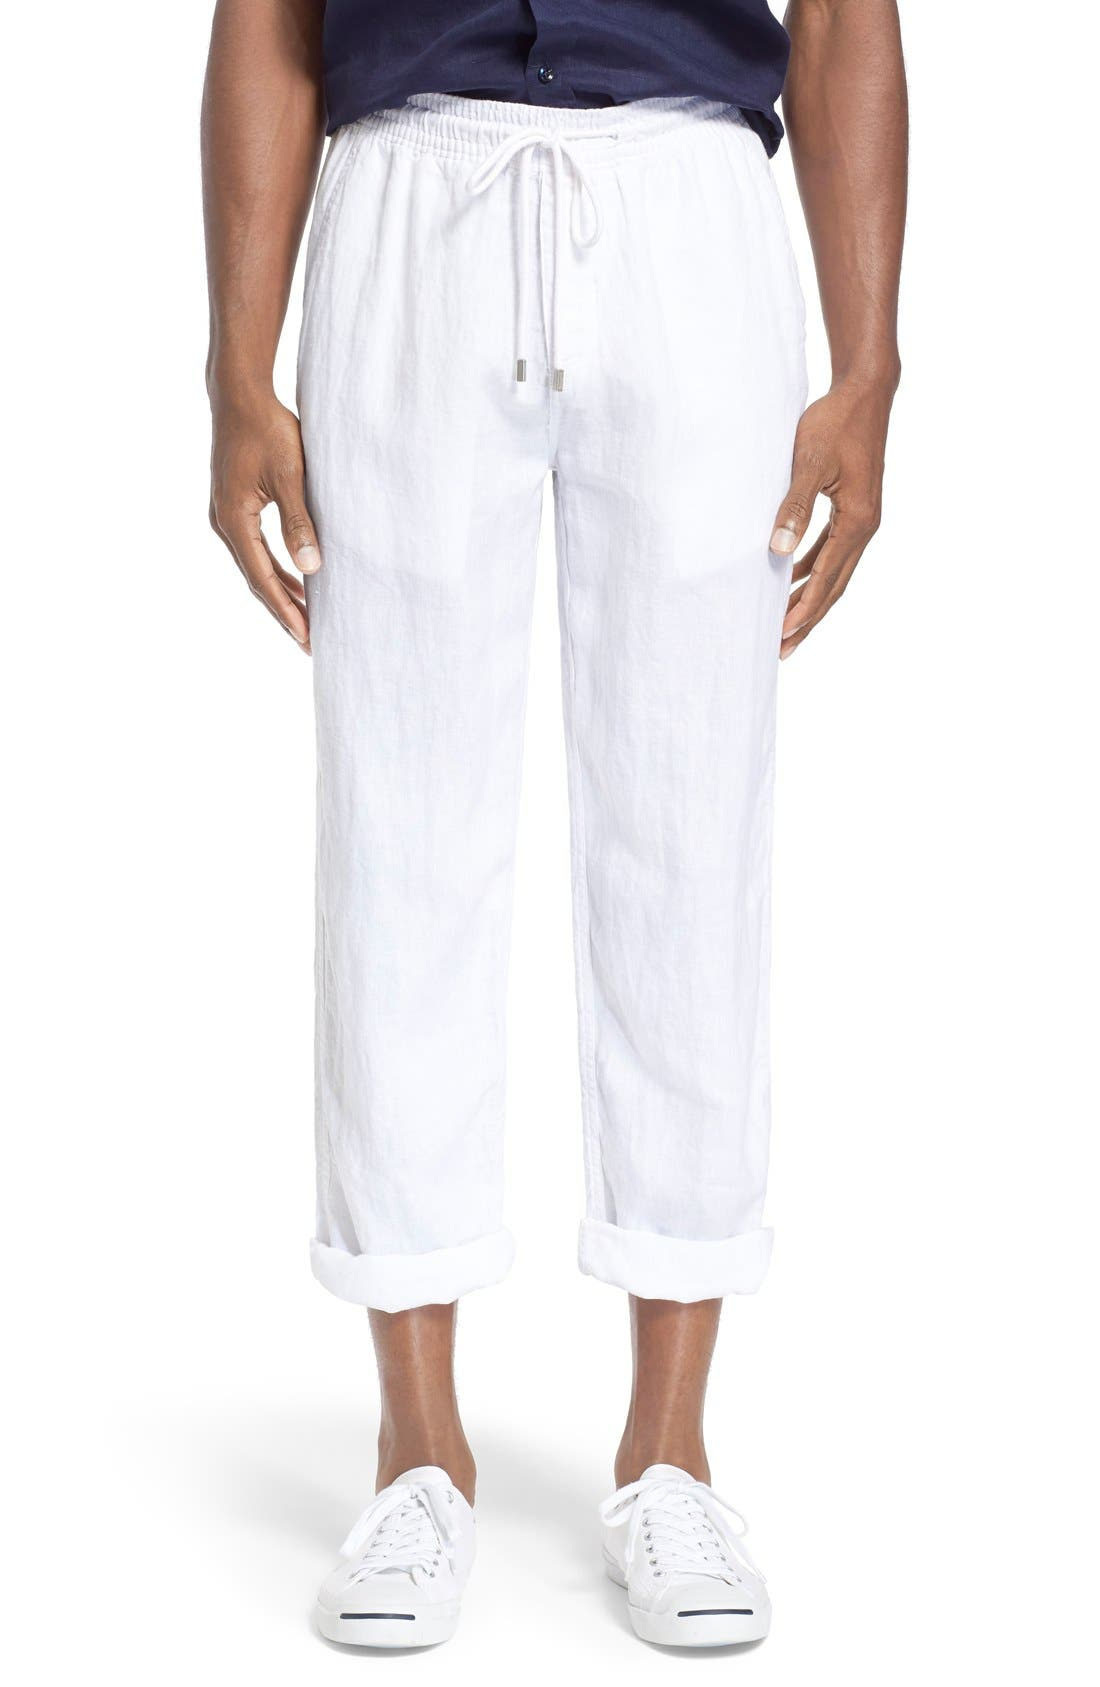 'Pacha' Linen Pants,                             Main thumbnail 1, color,                             100